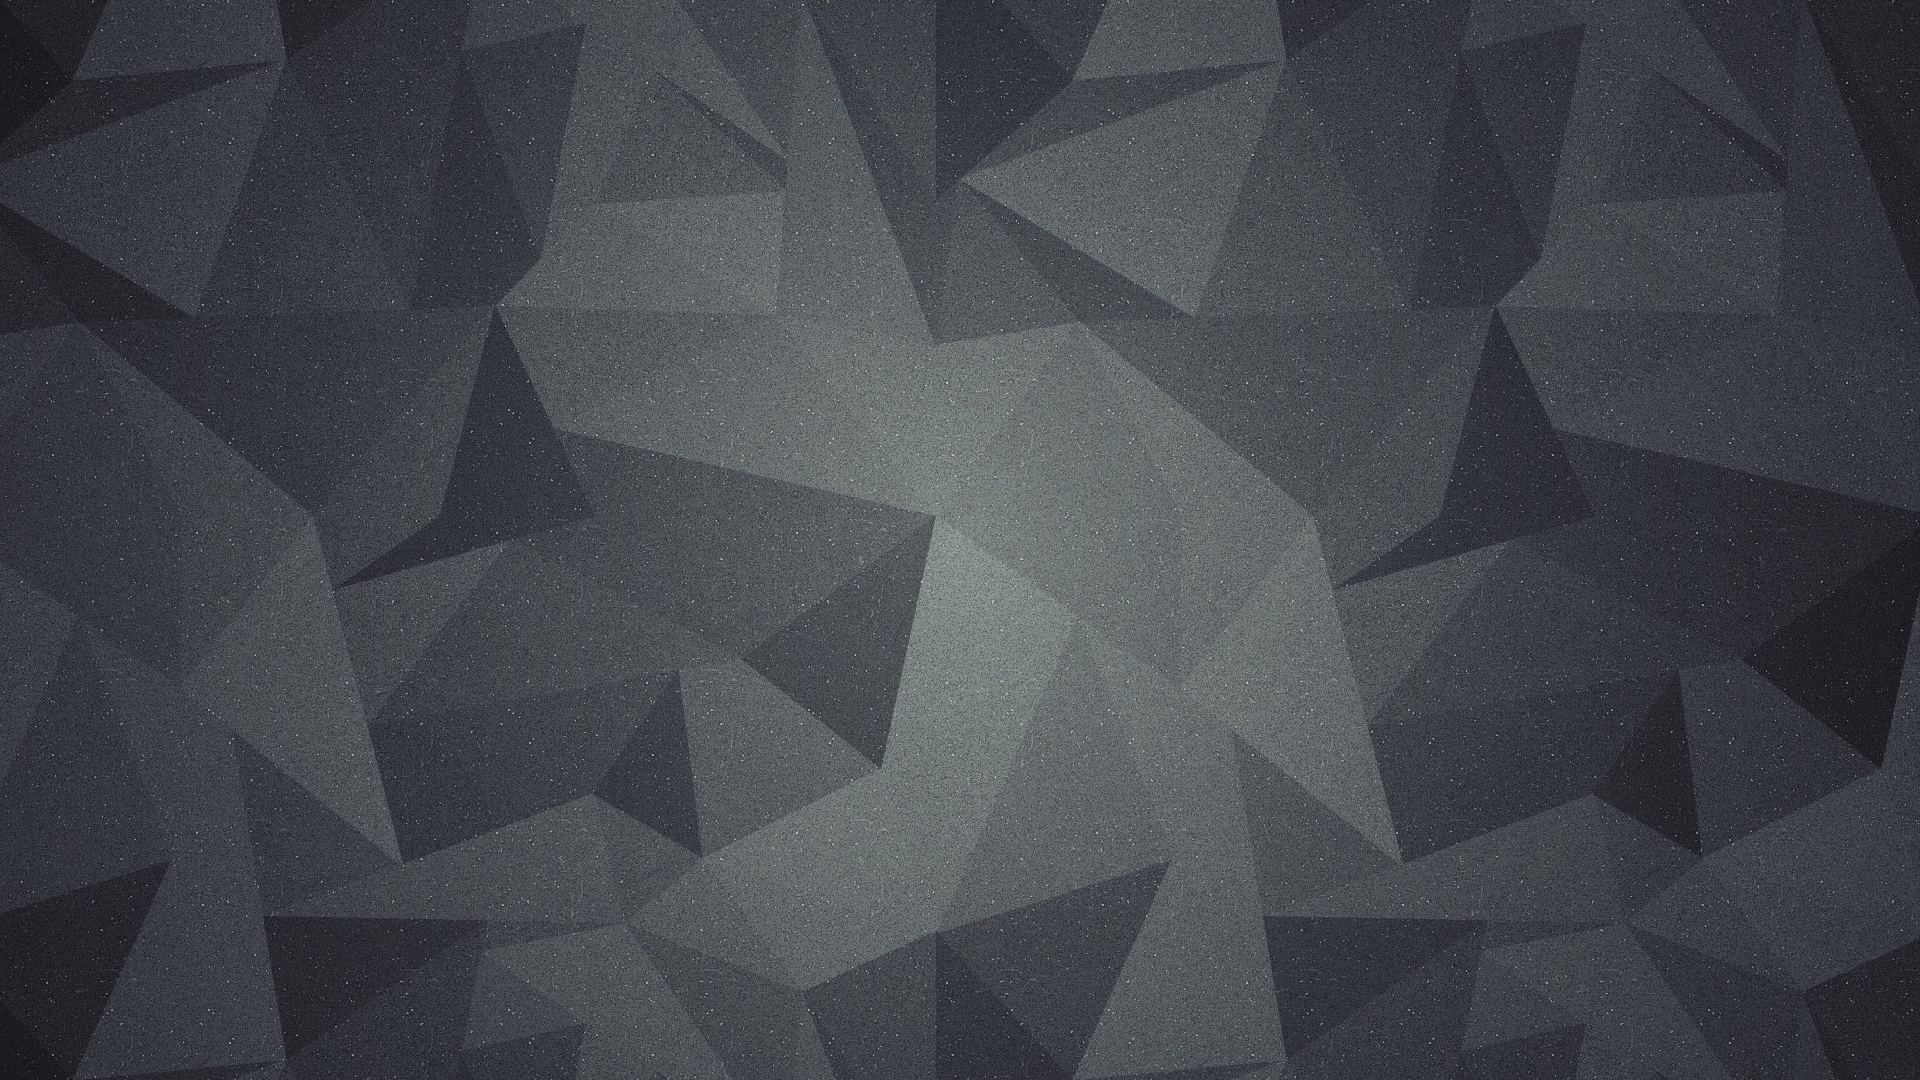 Abstract black circles geometry wallpaper   1920x1080